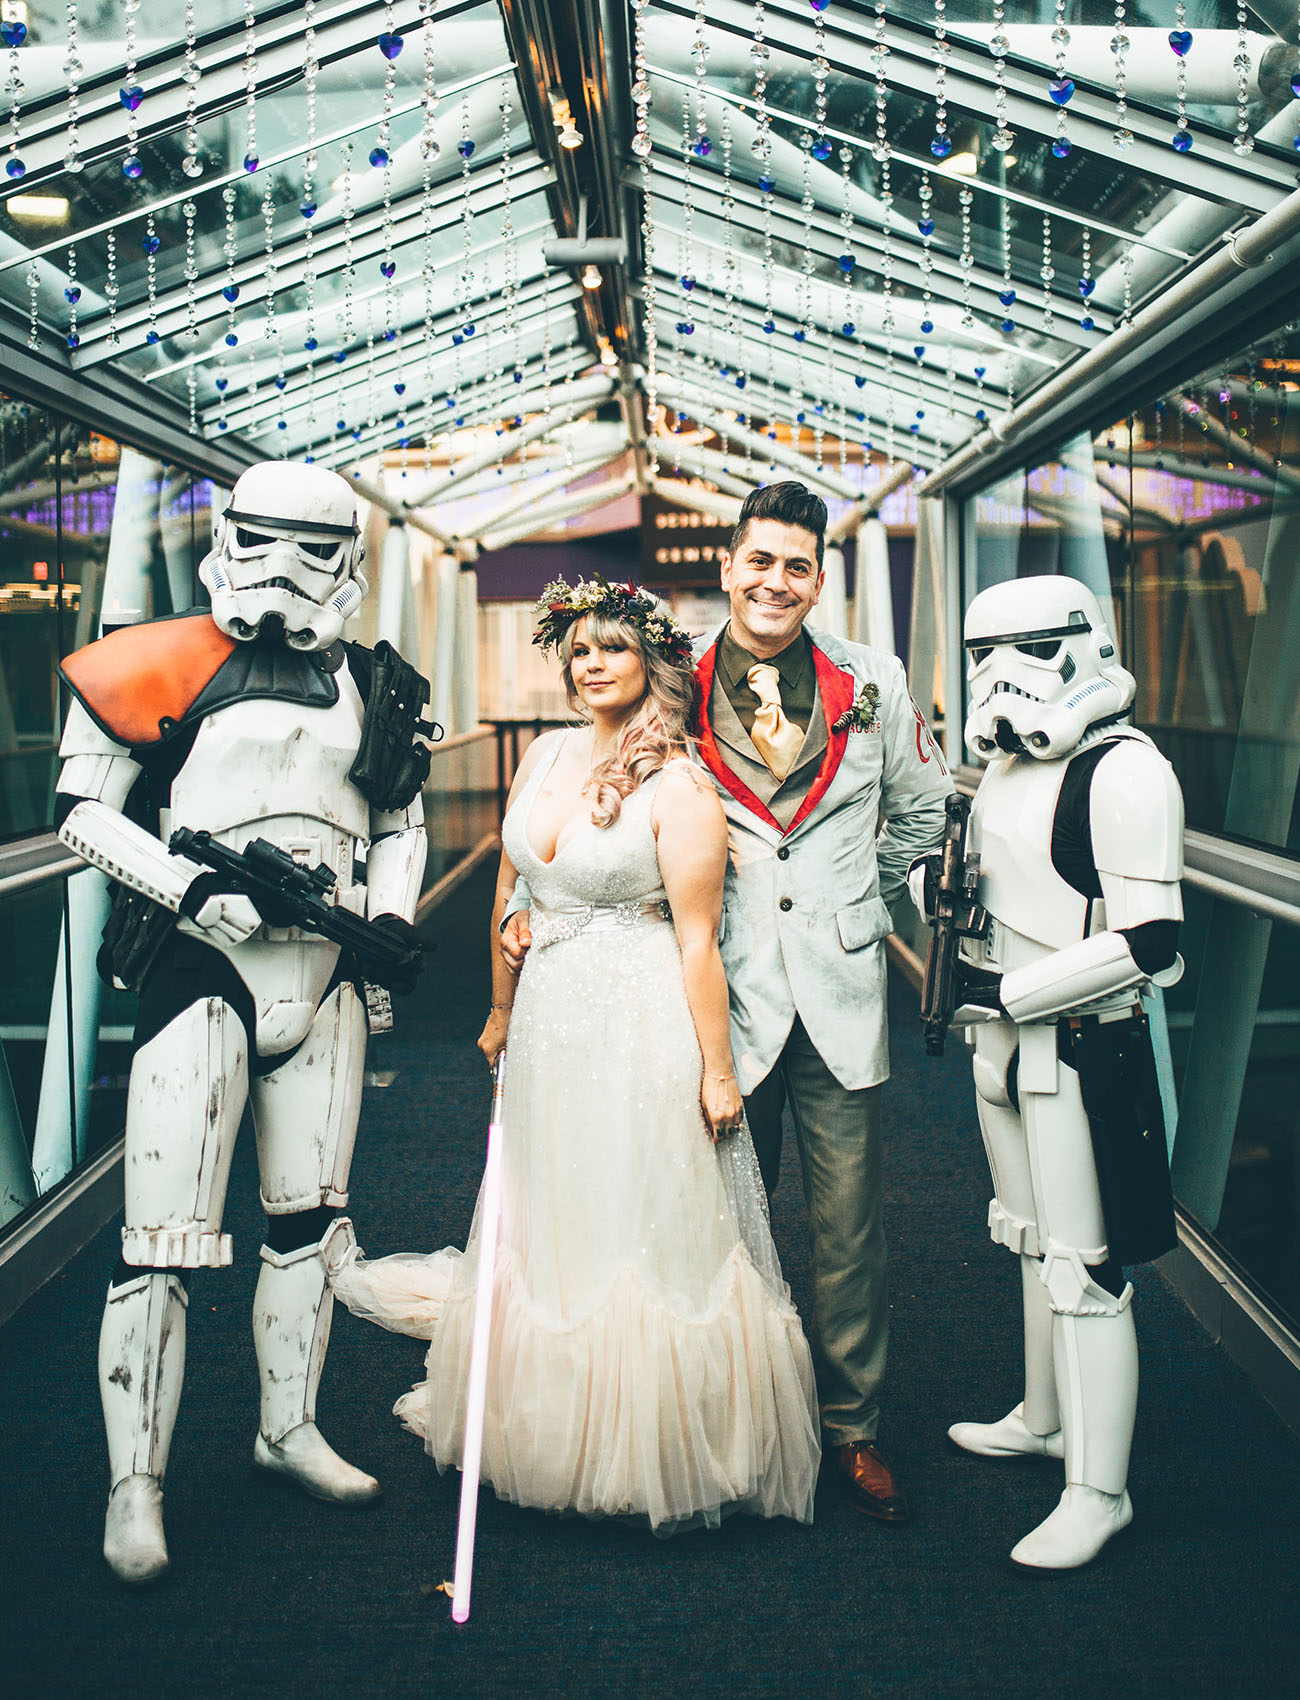 Star Wars Celebration Wedding